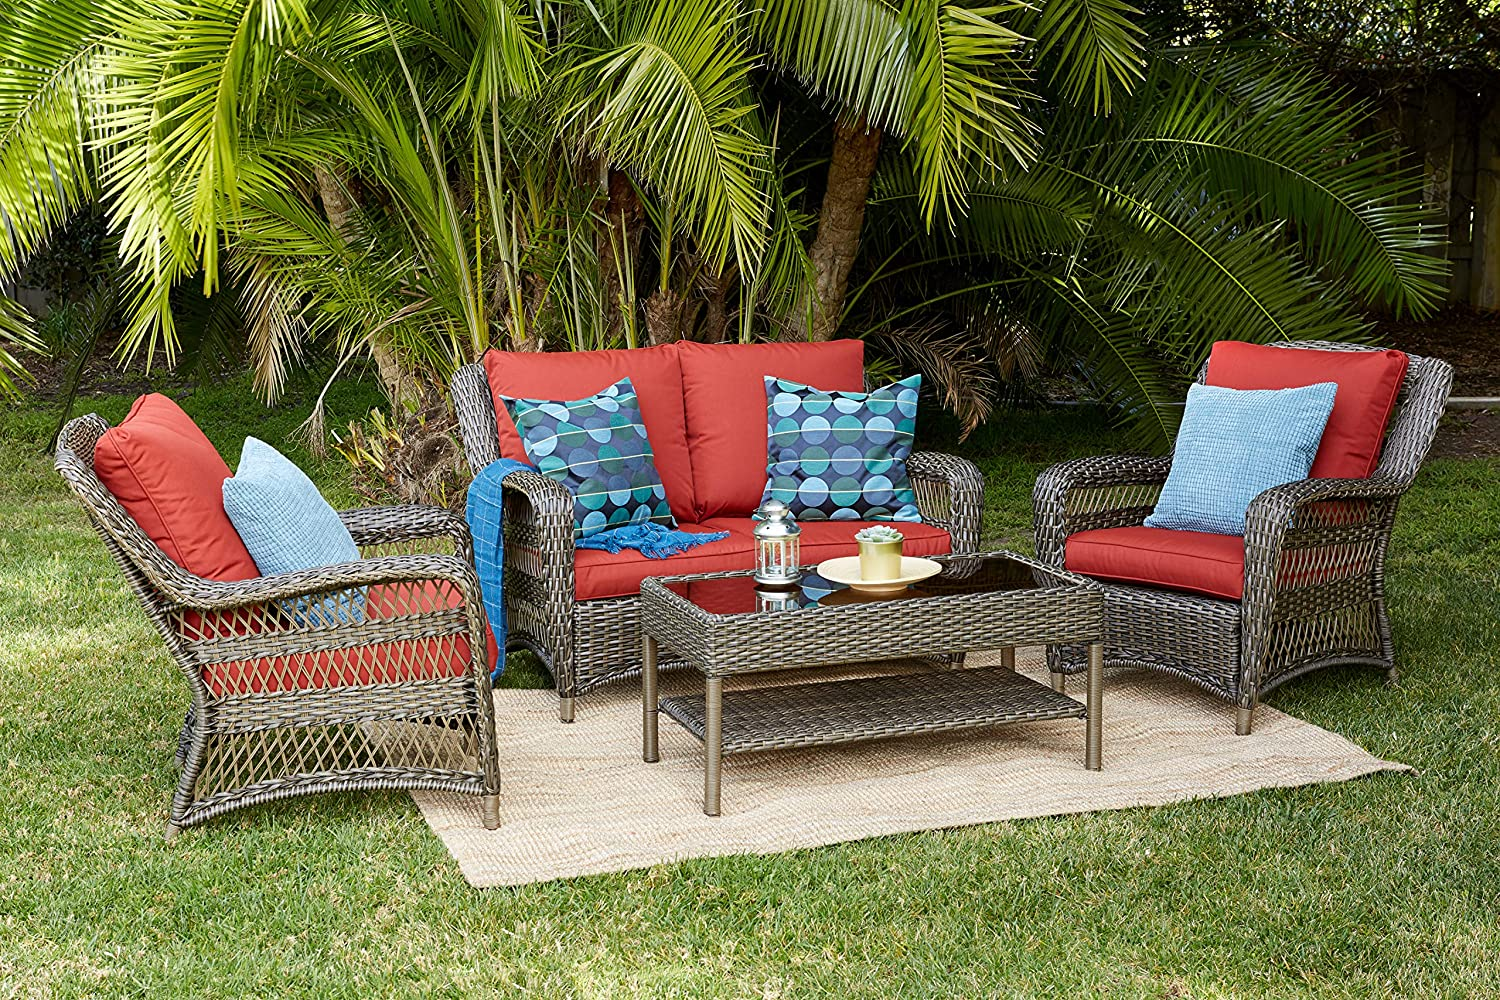 Quality Outdoor Living 65-5151271 Sonoma All-Weather Wicker 4 Piece Deep Seating Set, Brown Red Cushions